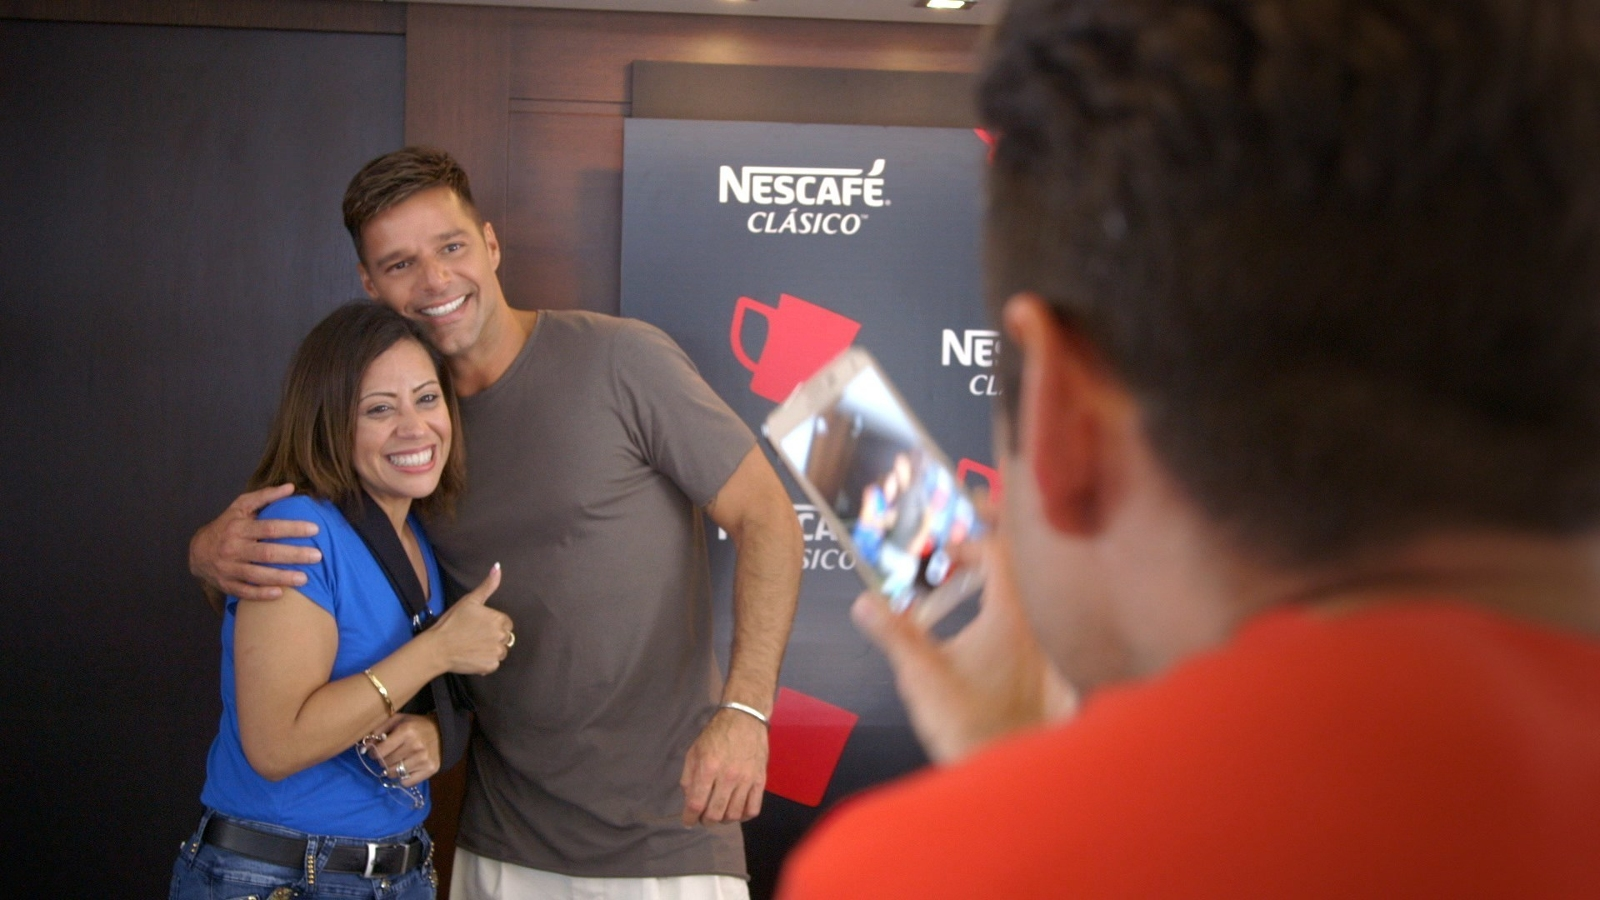 Nescafe Teams Up with Ricky Martin to Break the Routine